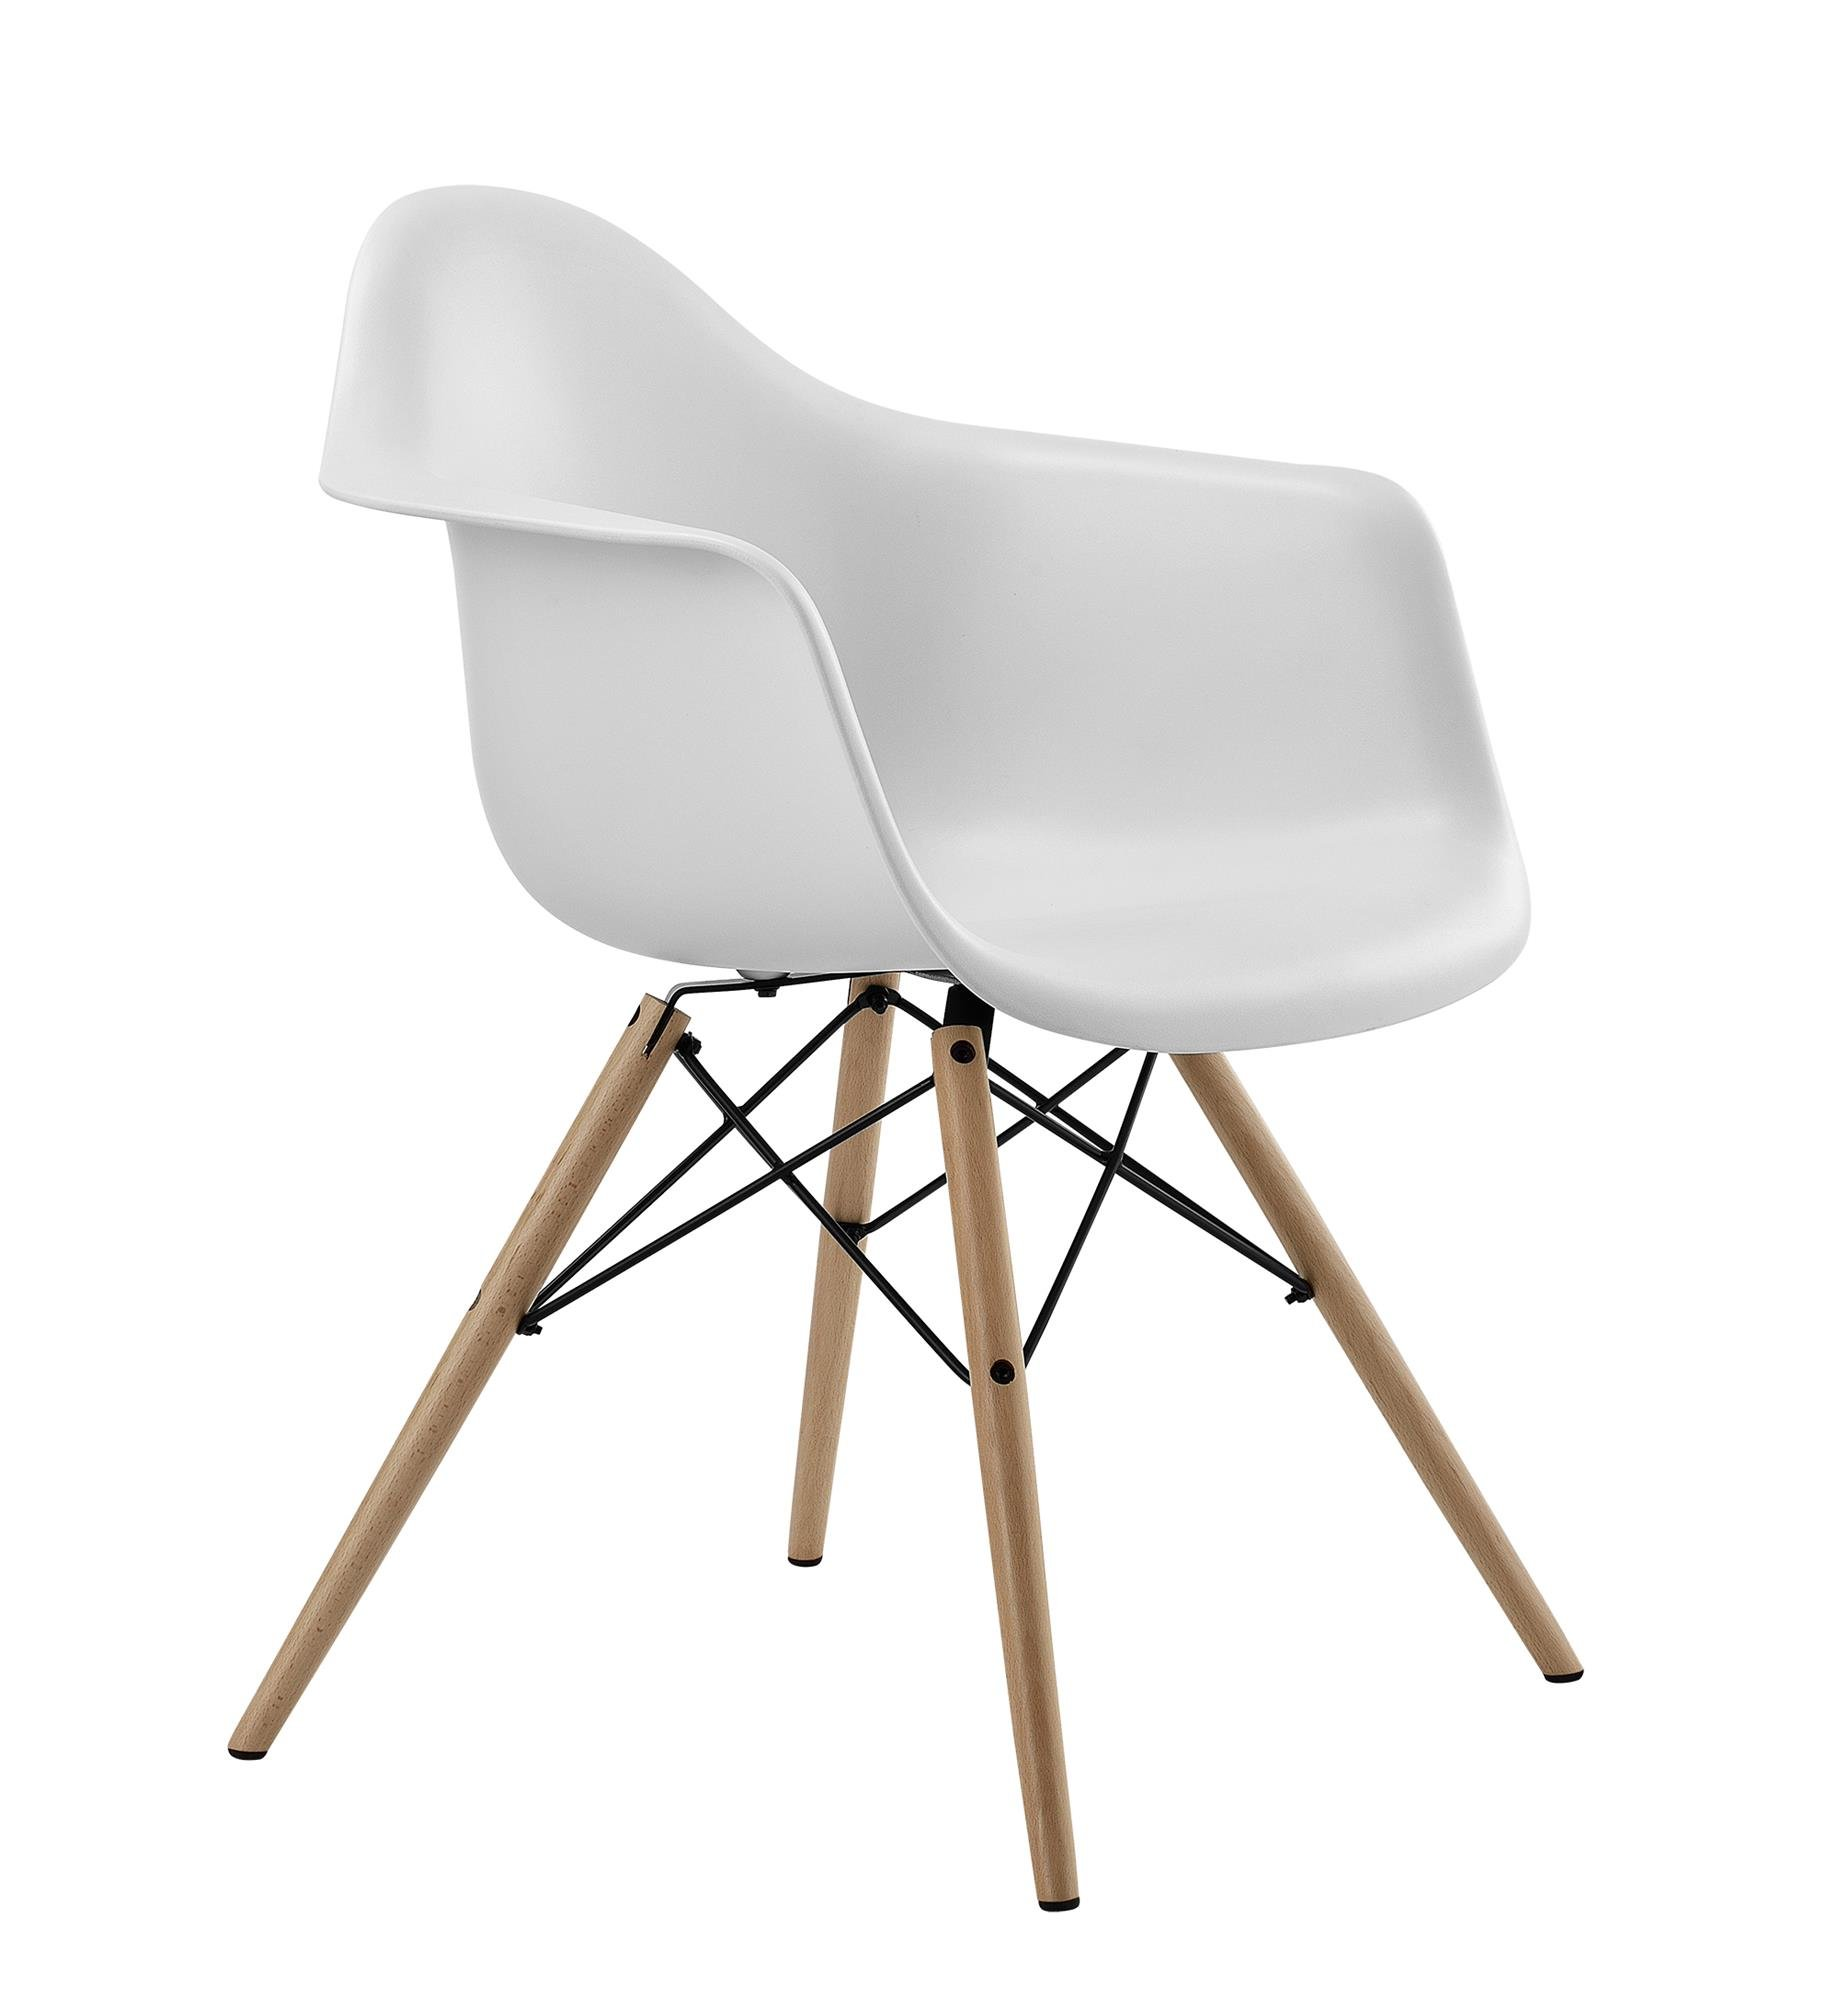 DHP Mid Century Modern Chair with Wood Legs, White by DHP